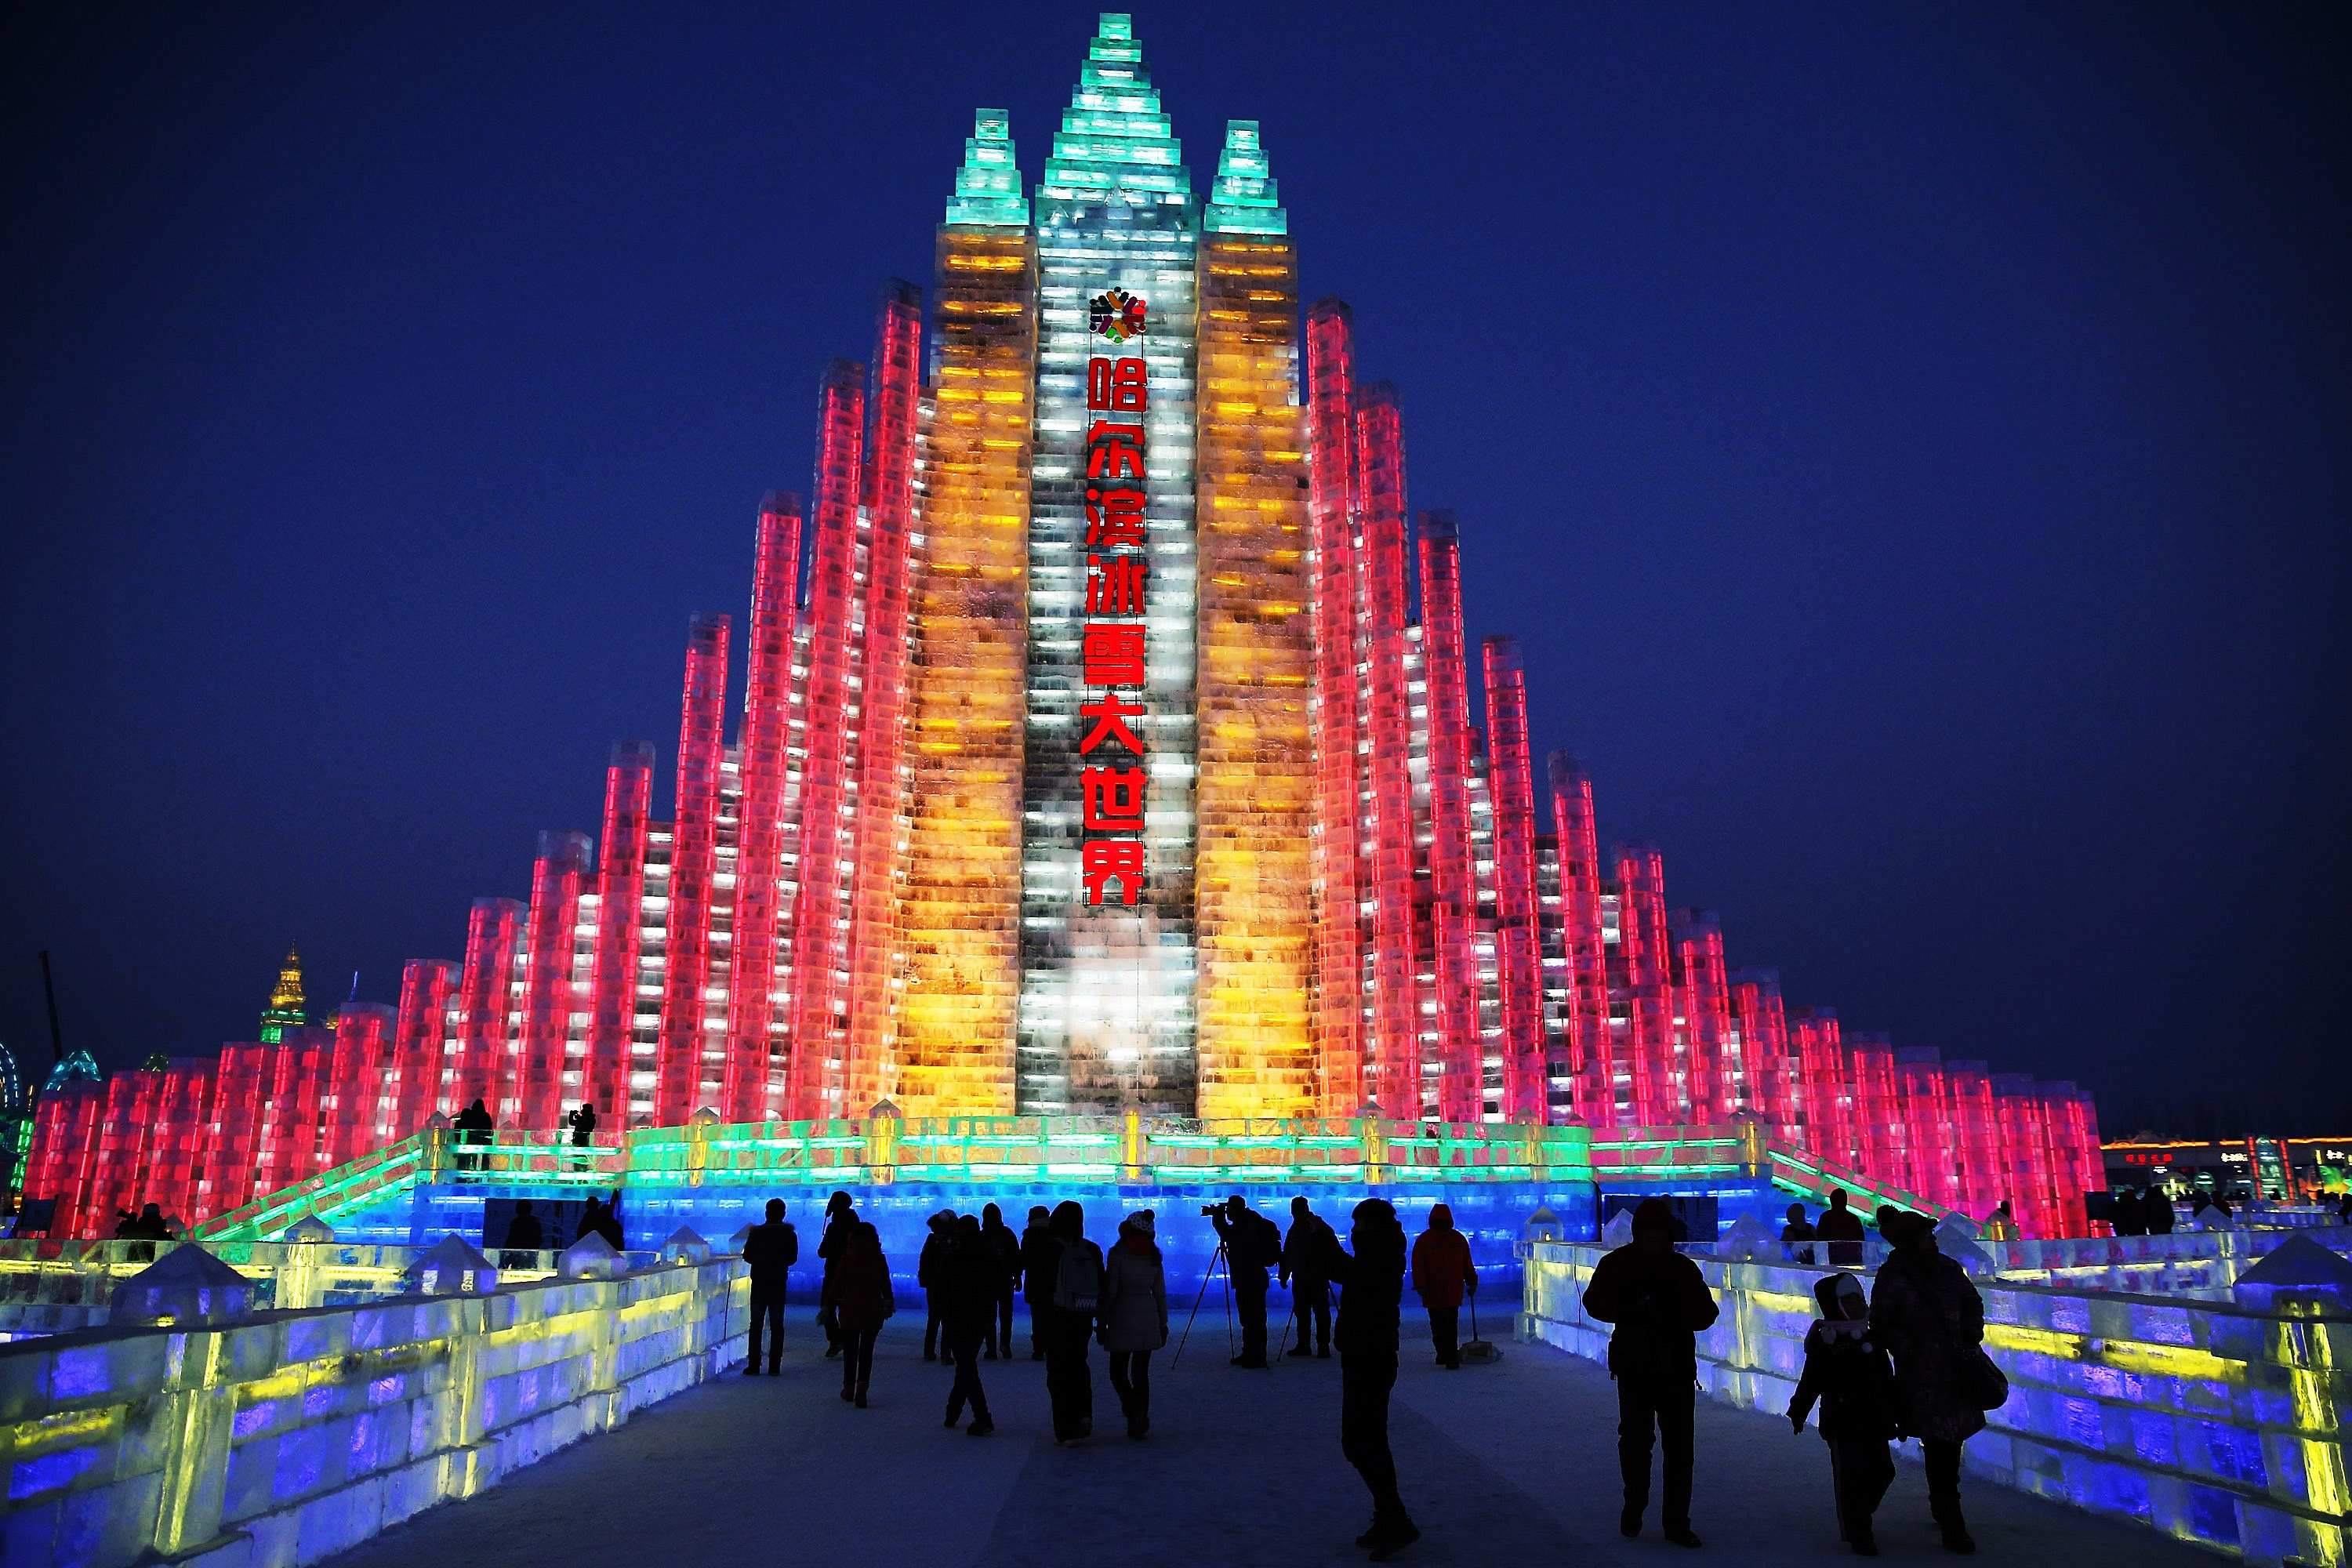 Harbin International Ice And Snow Sculpture Festival In China Brings Winter Wonderland To Life